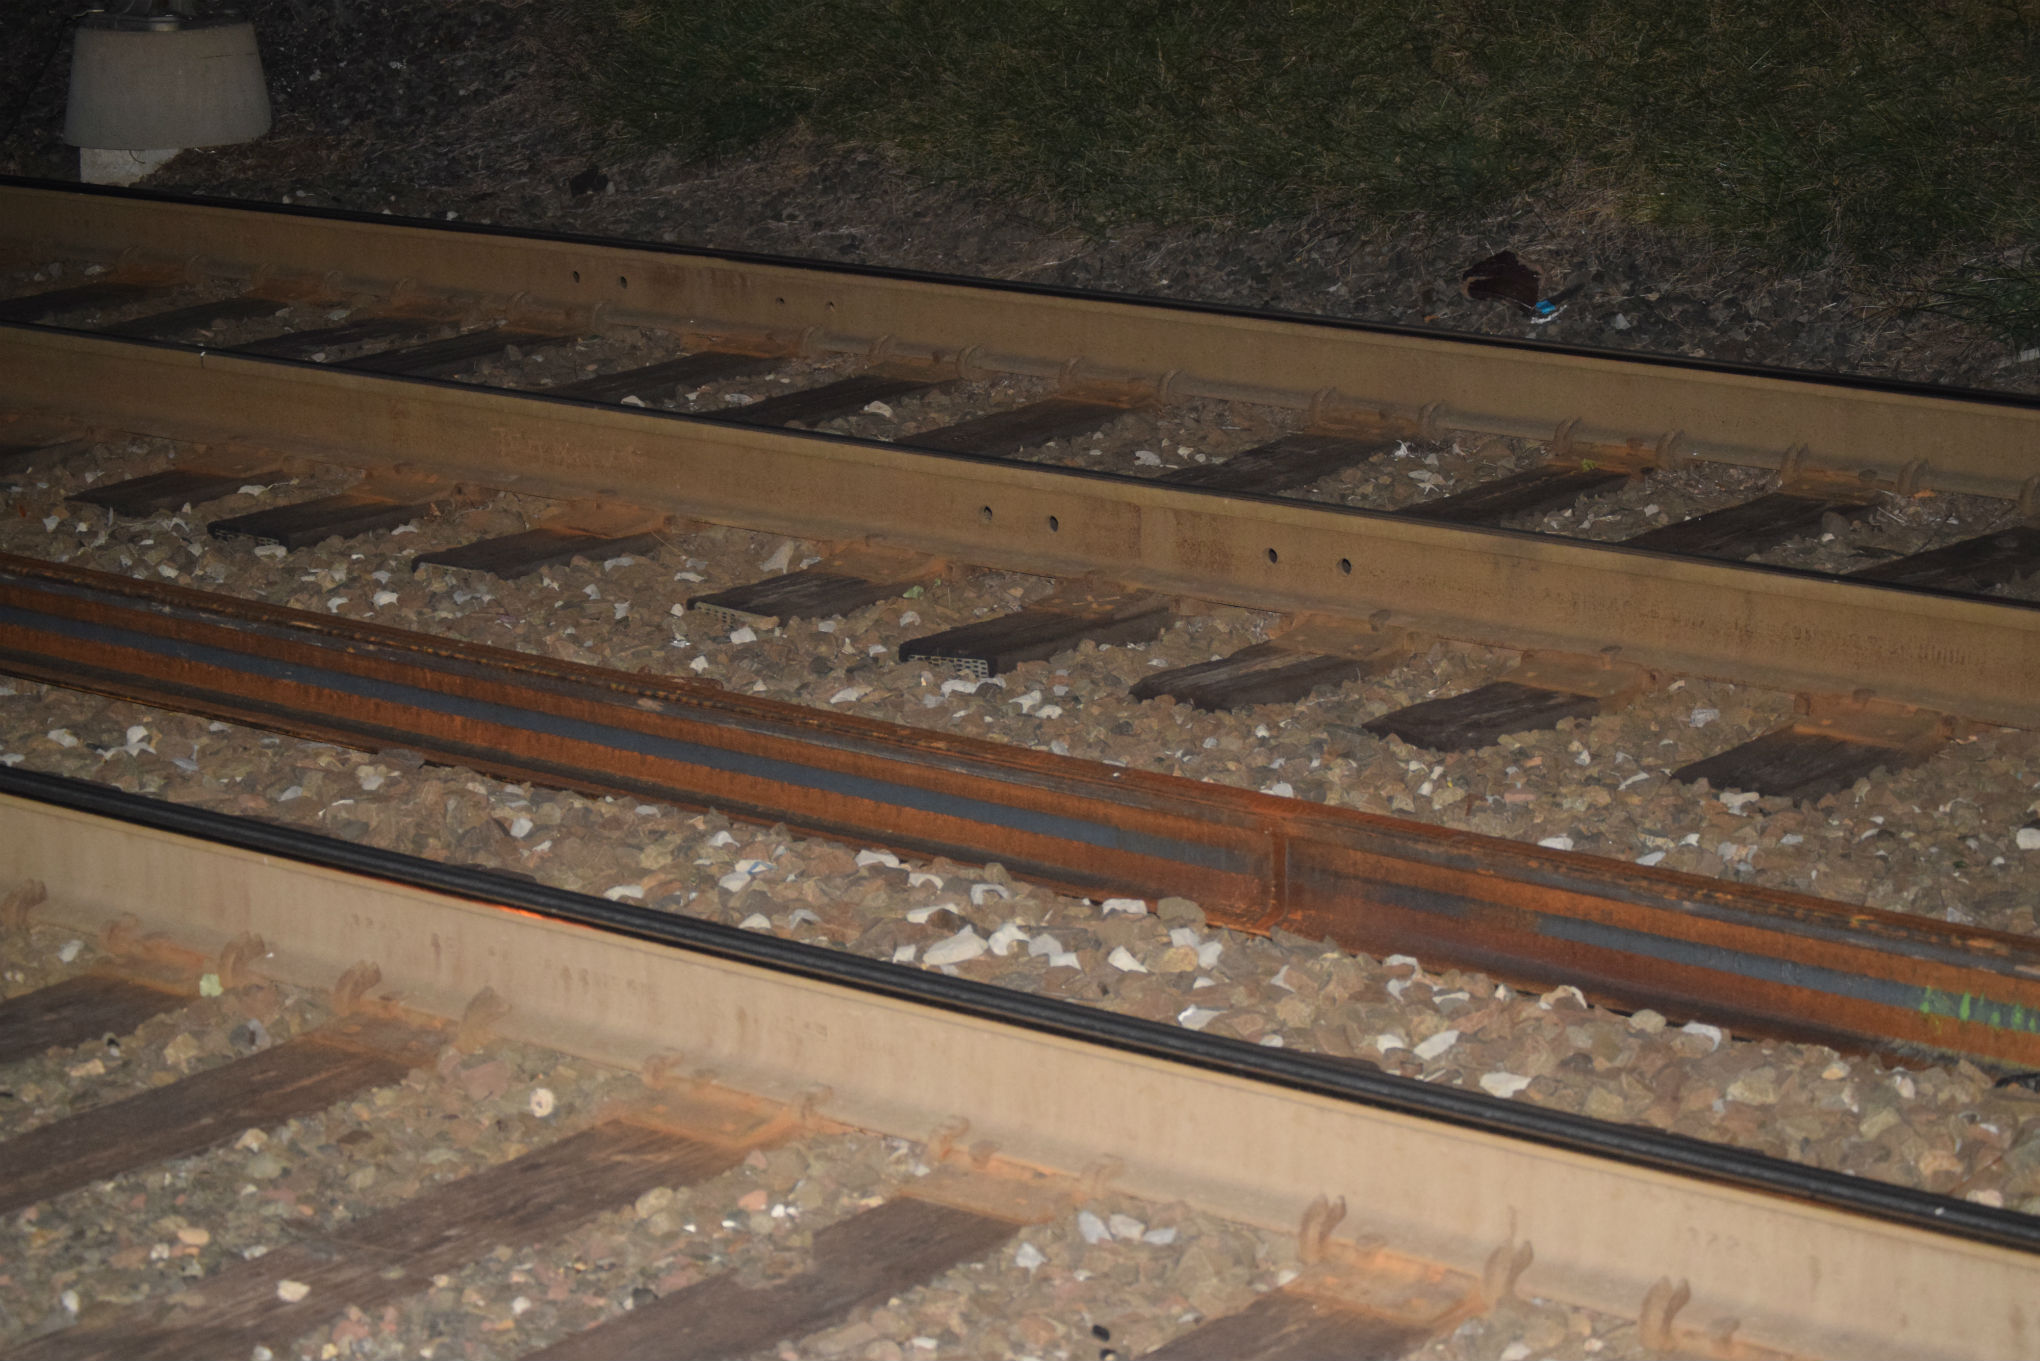 064ff8bccccec7539bfe_walnut_street_train_tracks.jpg